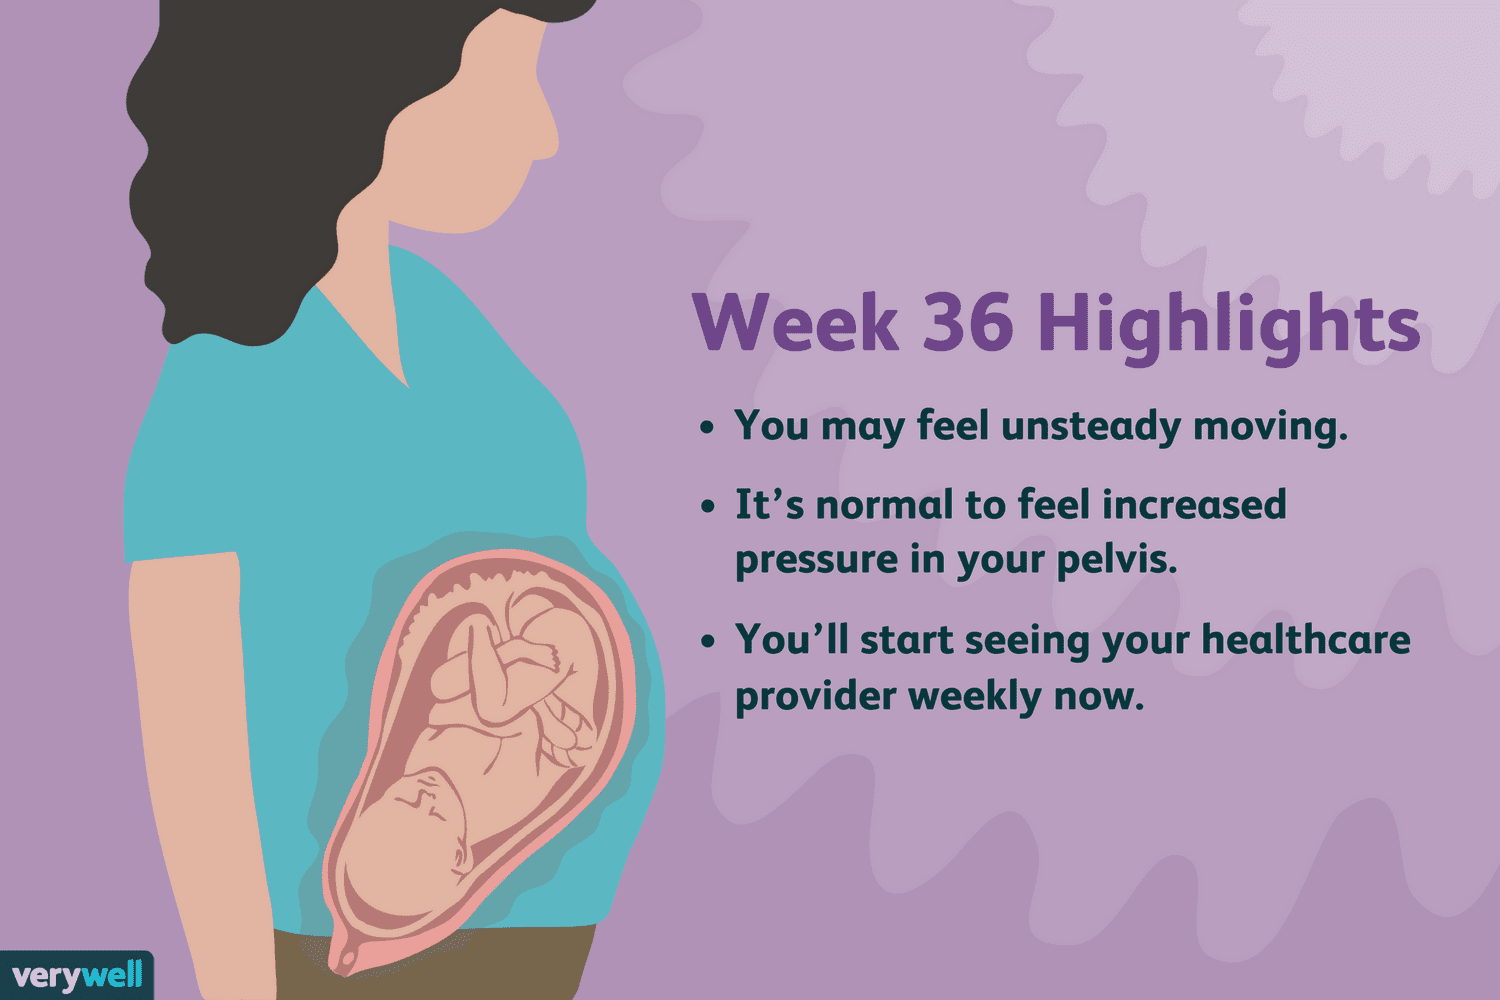 36 Weeks Pregnant: Symptoms, Baby Development, and More